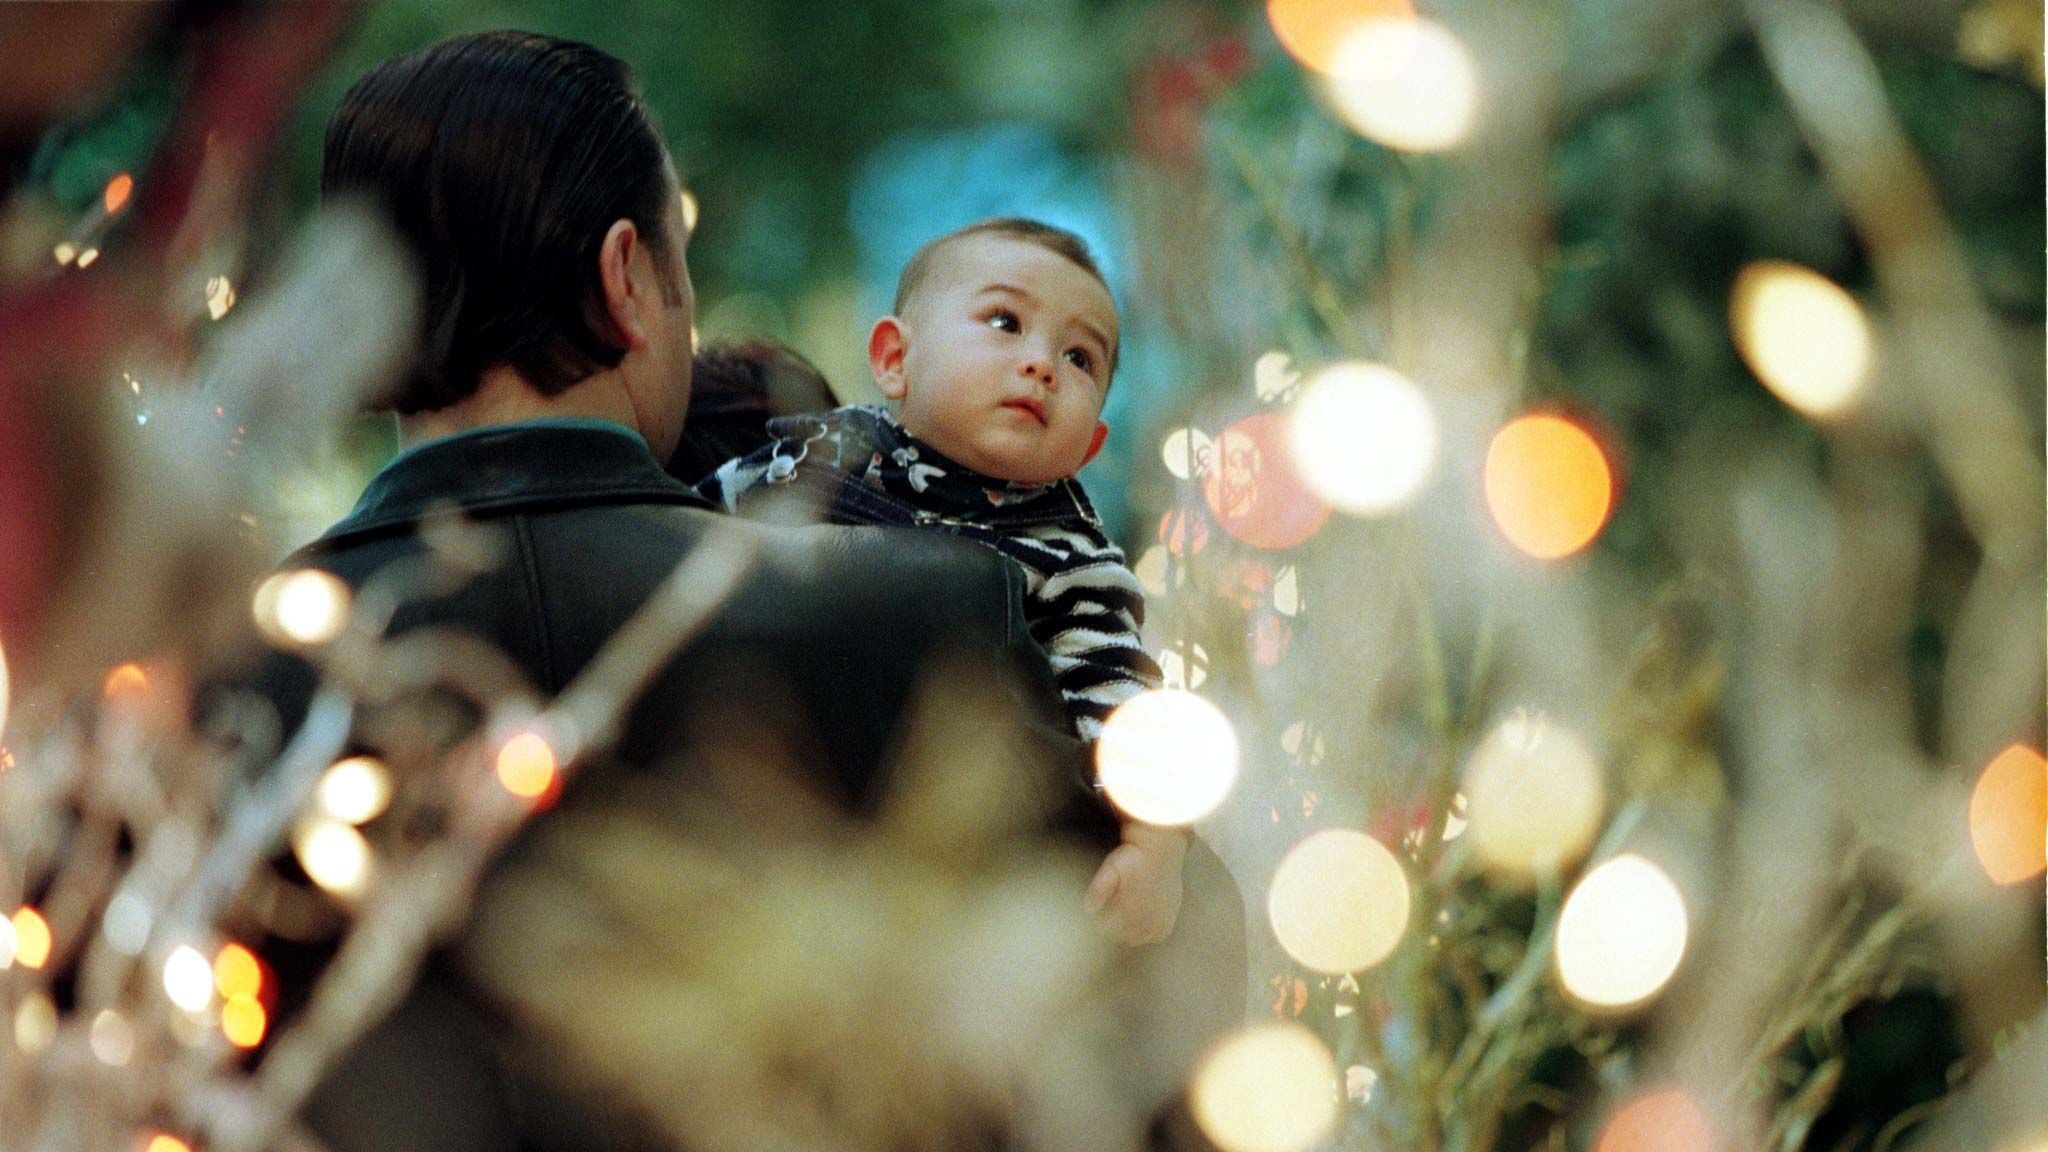 A baby looks at Christmas tree lights.